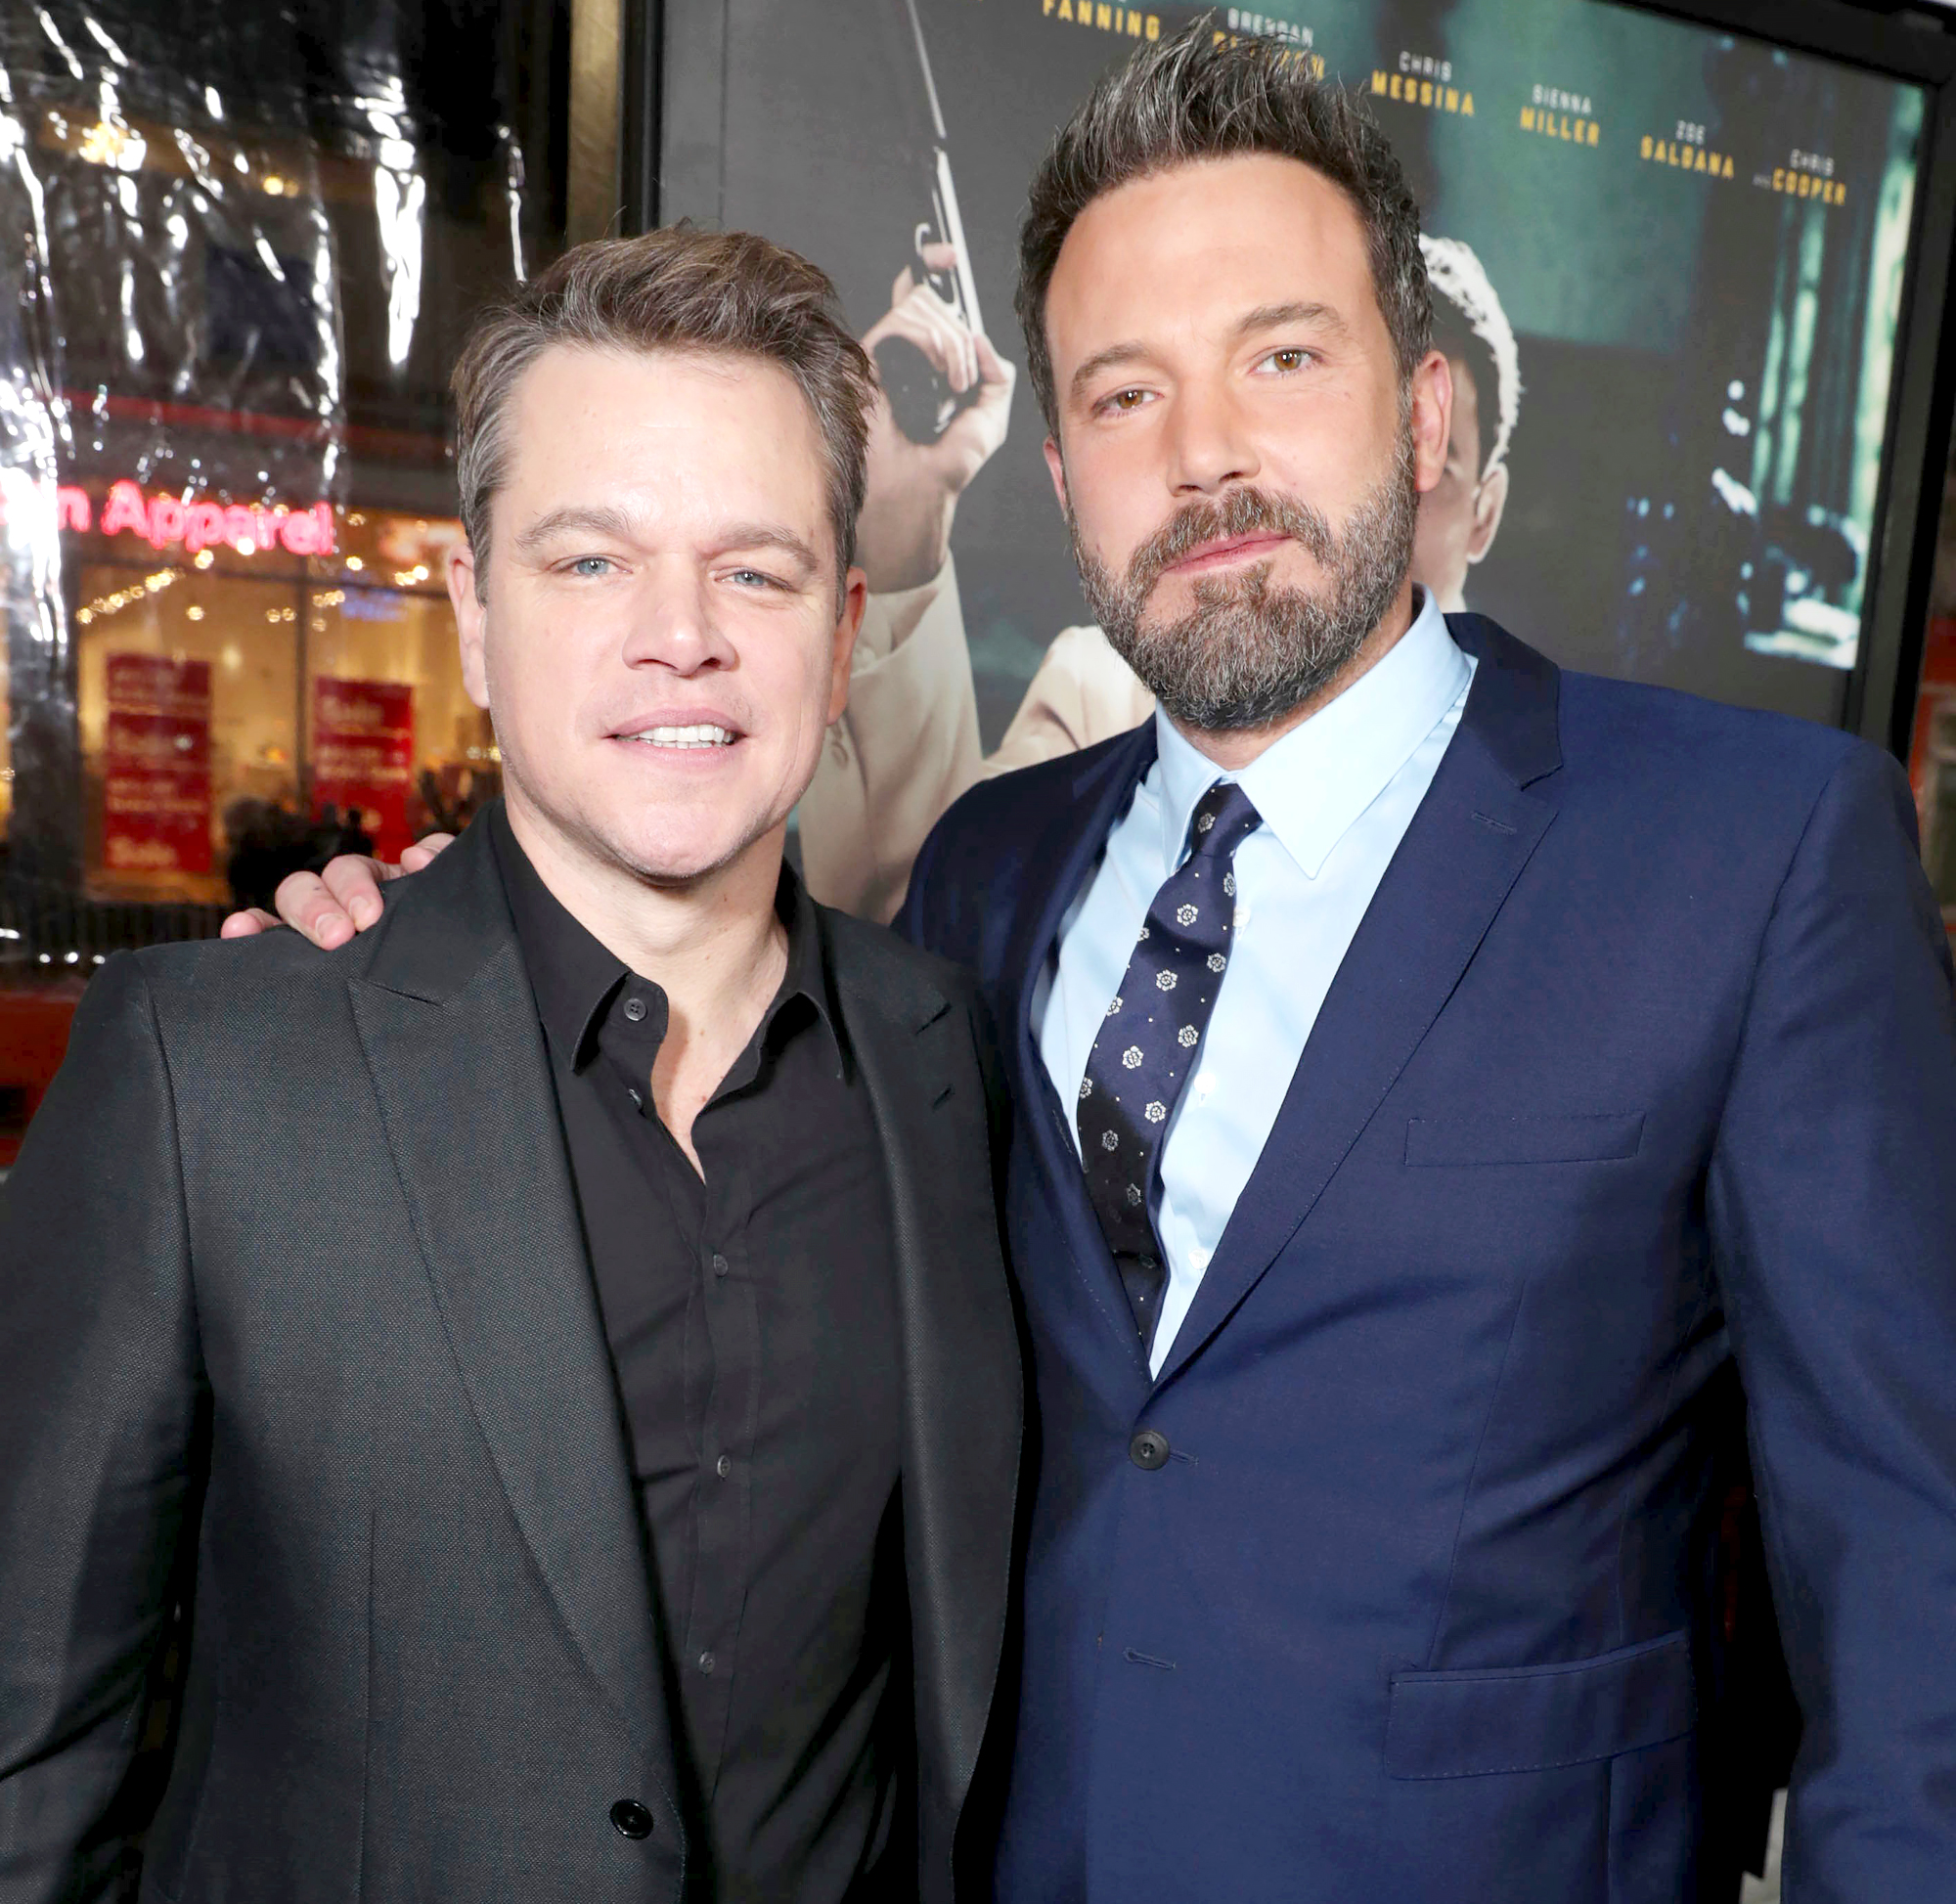 Matt-Damon-Says-Ben-Affleck-Doing-Great-Post-Relapse